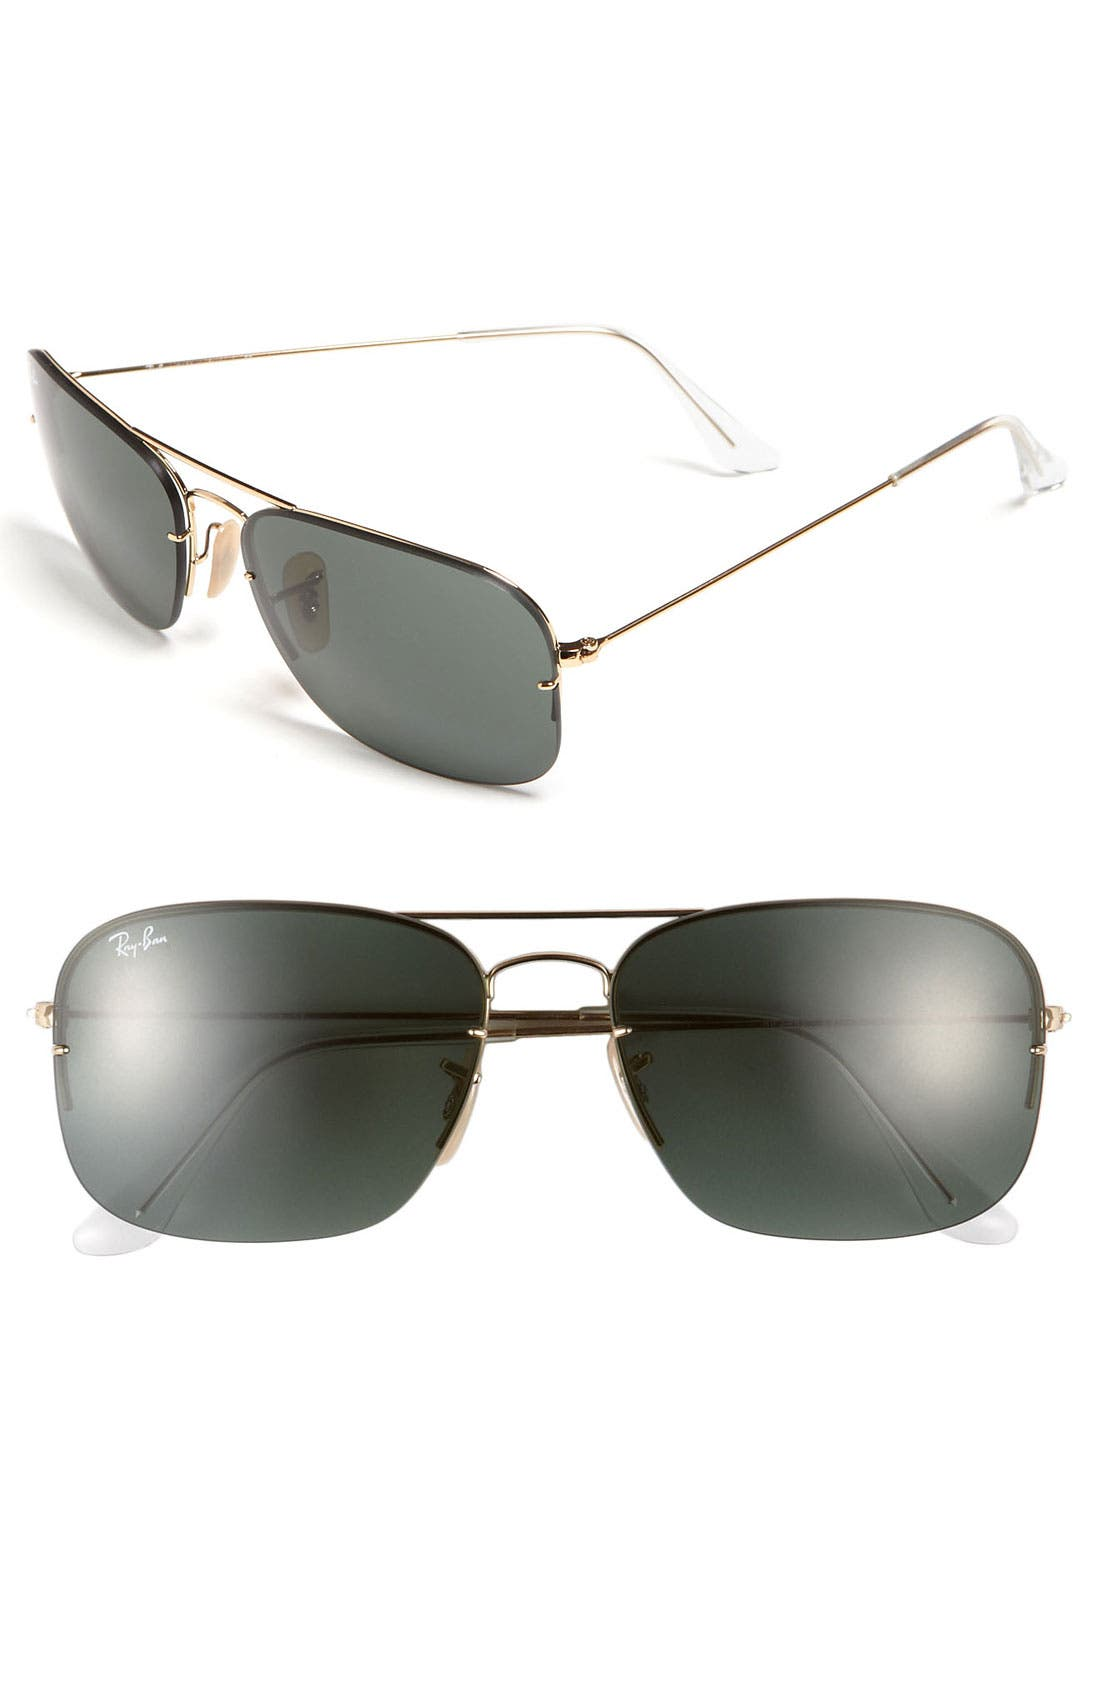 Alternate Image 1 Selected - Ray-Ban 'Interchangeable Lens Box Set' 59mm Navigator Sunglasses